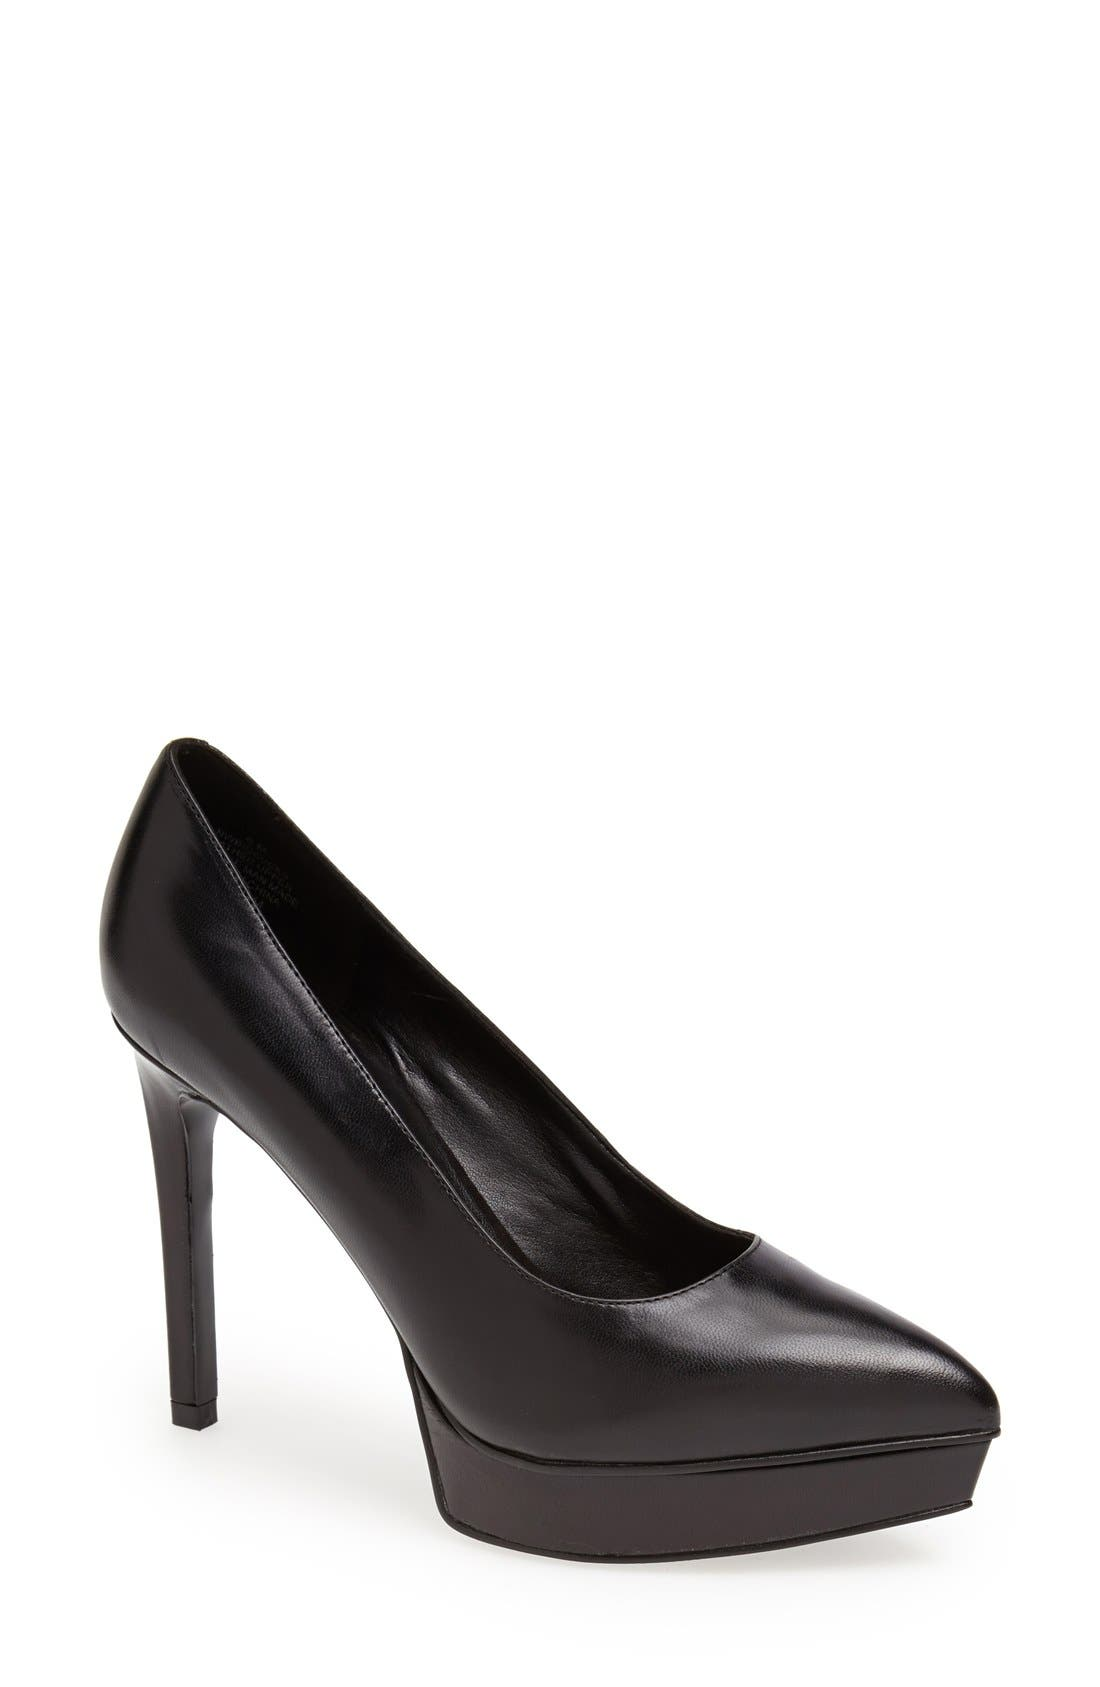 Alternate Image 1 Selected - Nine West 'Big Bucks' Pump (Women)